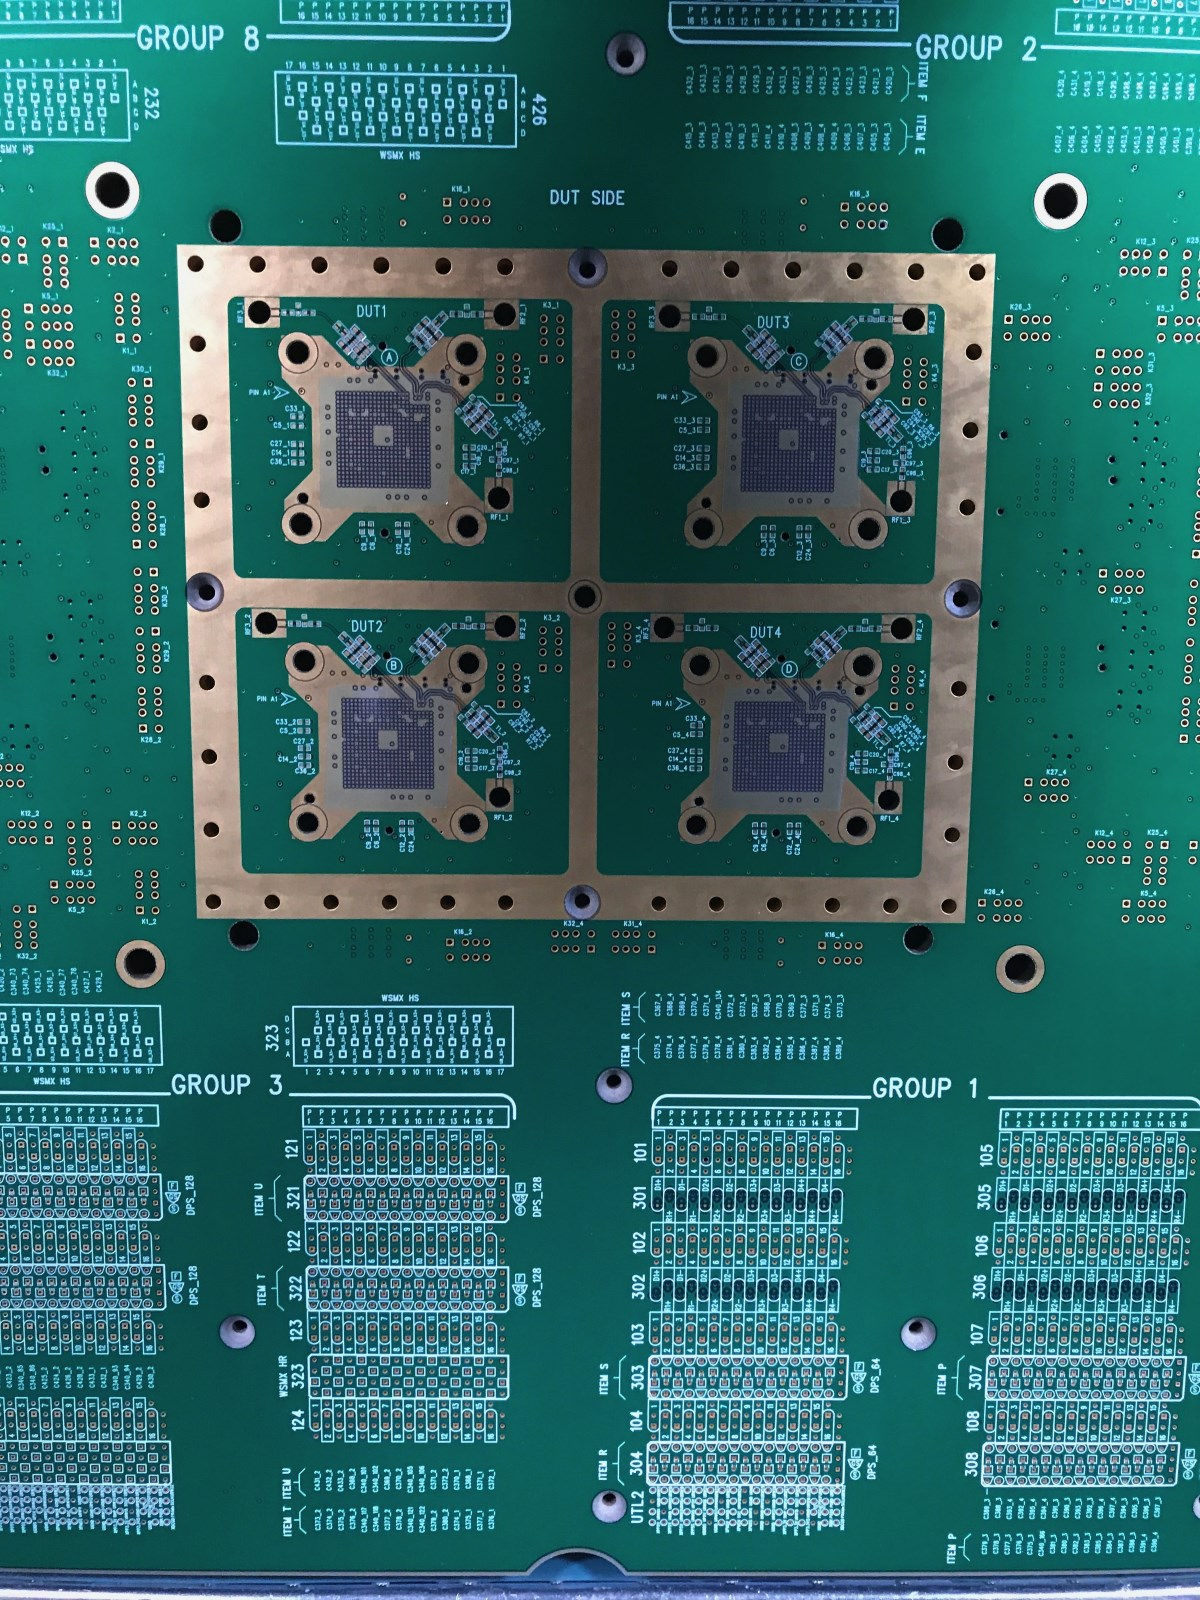 Anatomy Of Ate Pcb Assembly Ee Times Industrial Control Printed Circuit Board Pcba Here